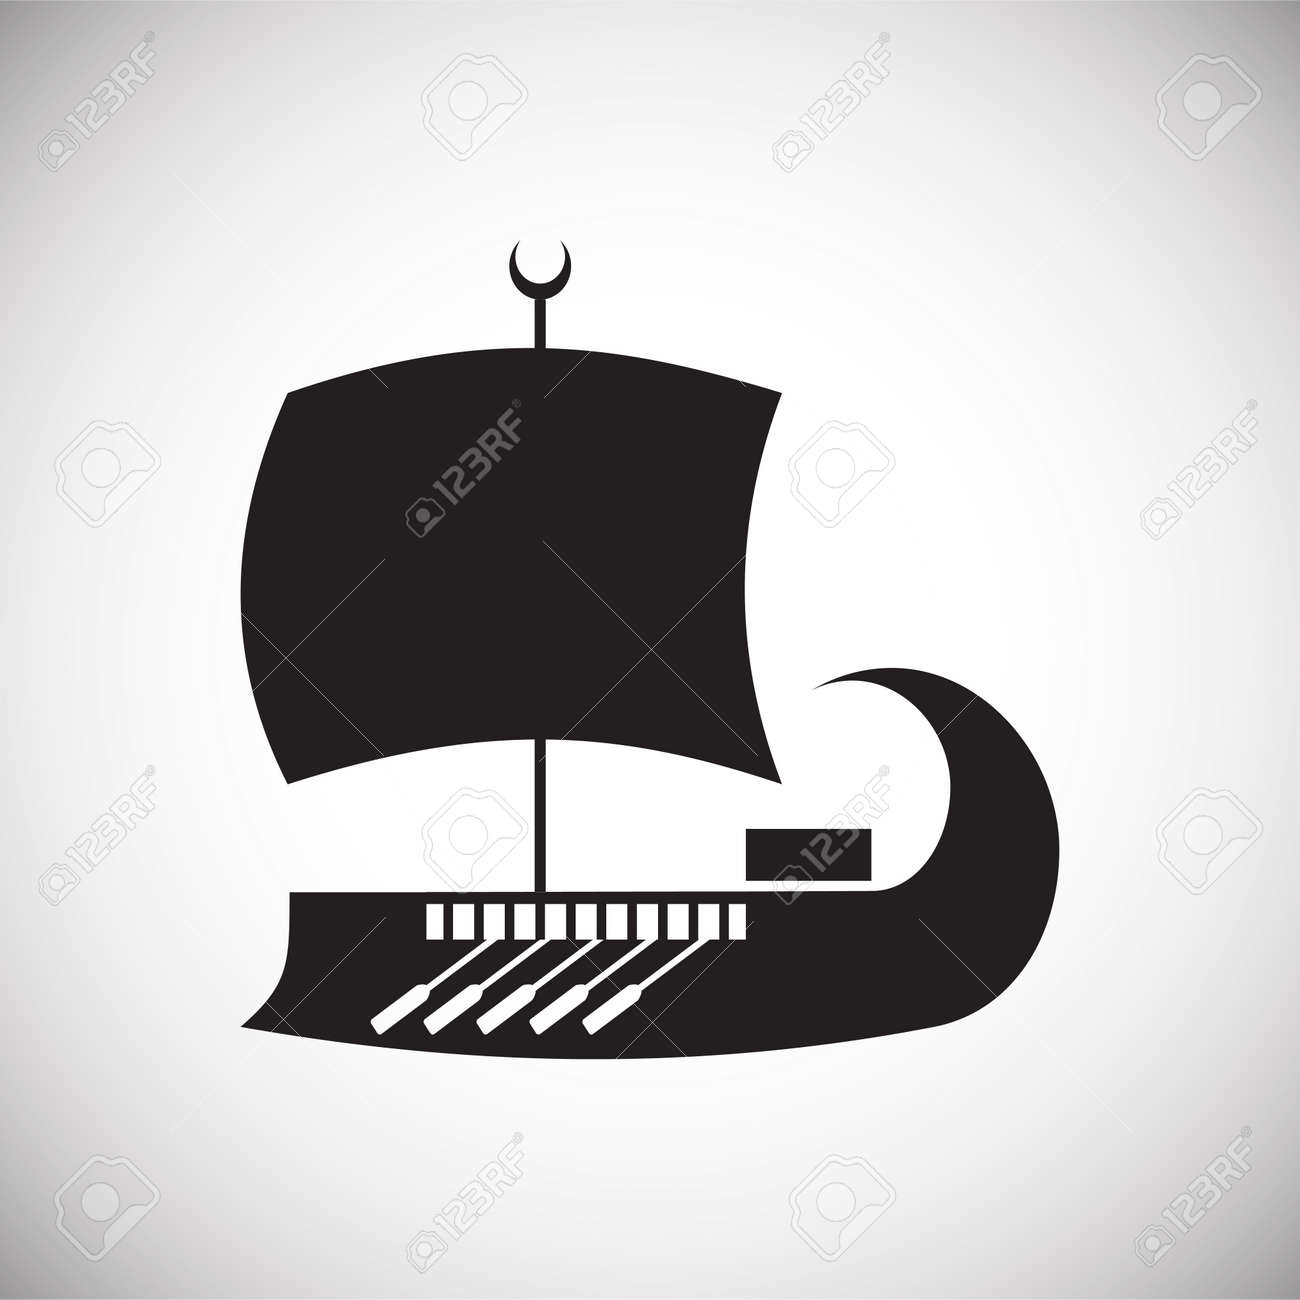 Ship icon on background for graphic and web design. Simple vector sign. Internet concept symbol for website button or mobile app - 150814568